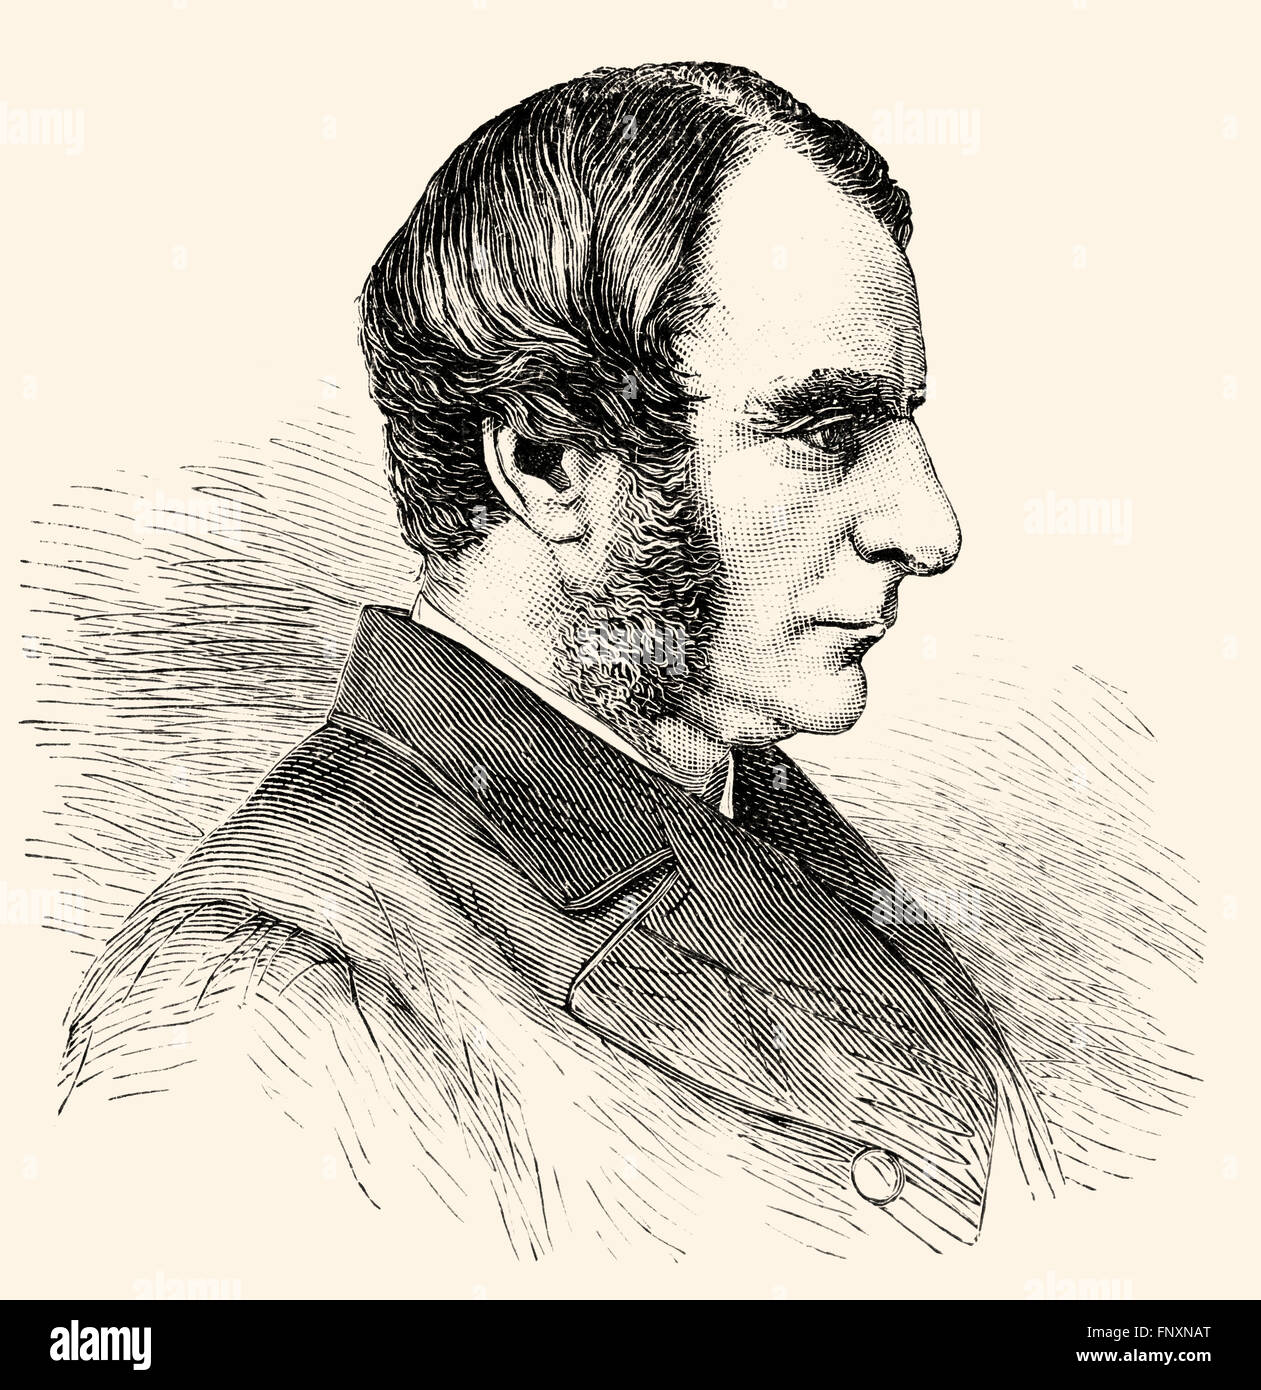 Charles Kingsley, 1819 - 1875, an English theologian and writer - Stock Image